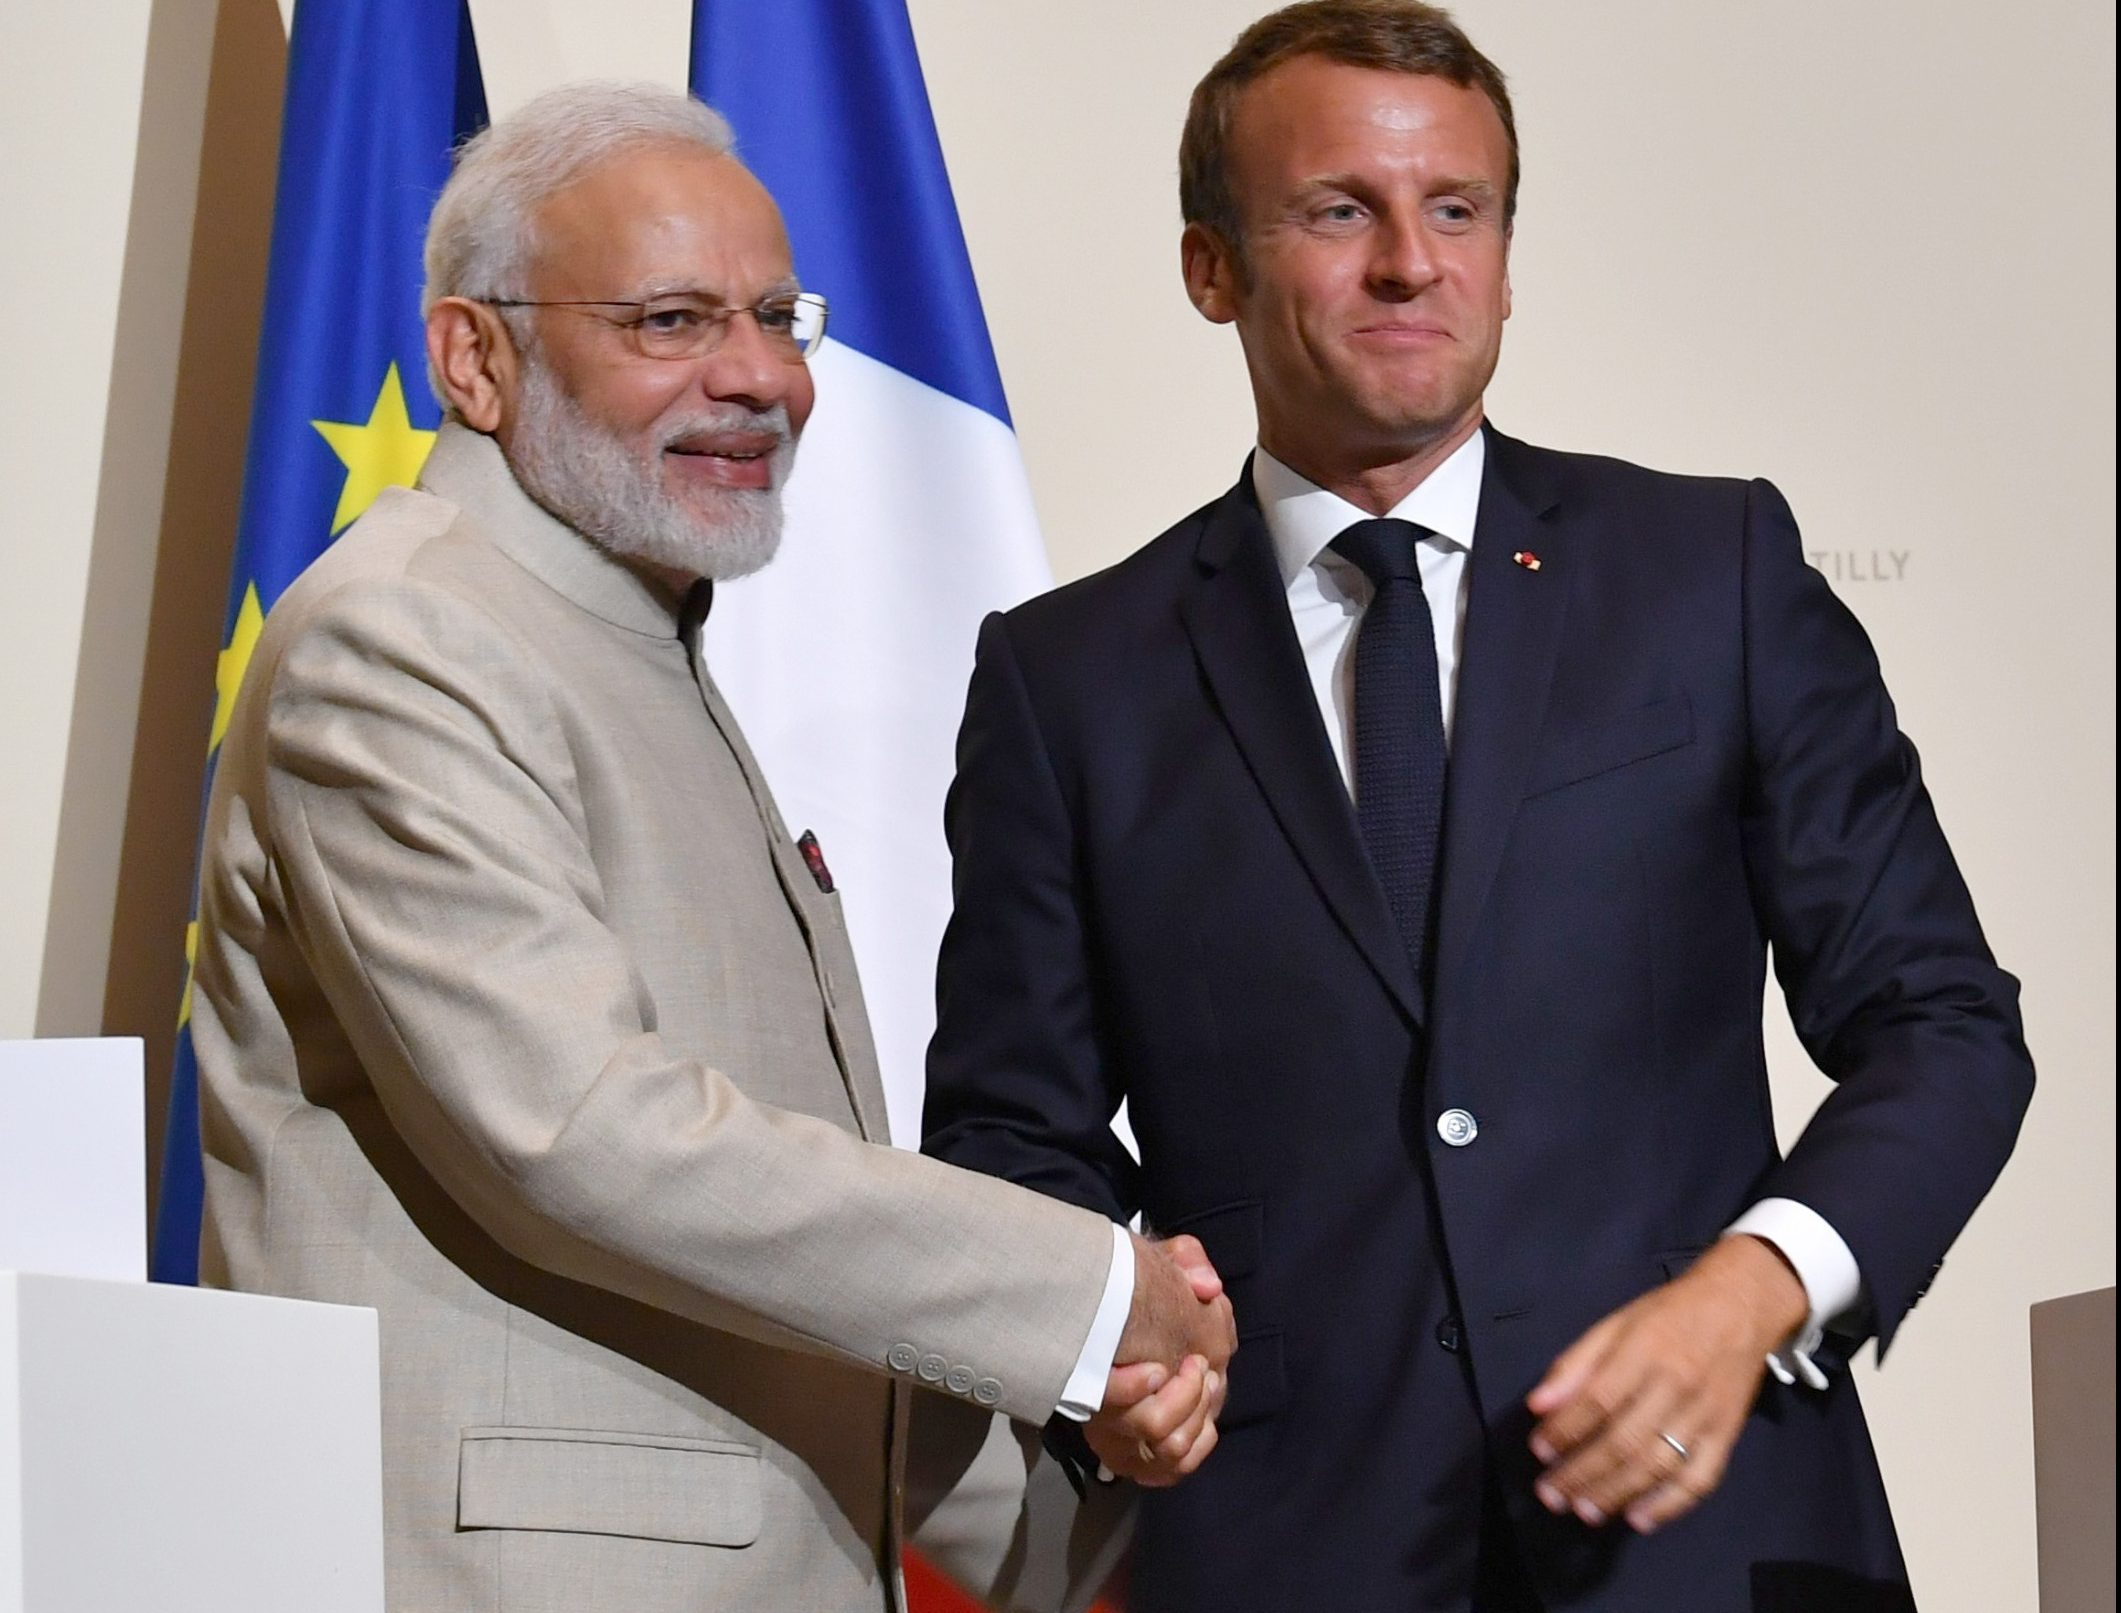 List of MoUs signed during visit of PM to France